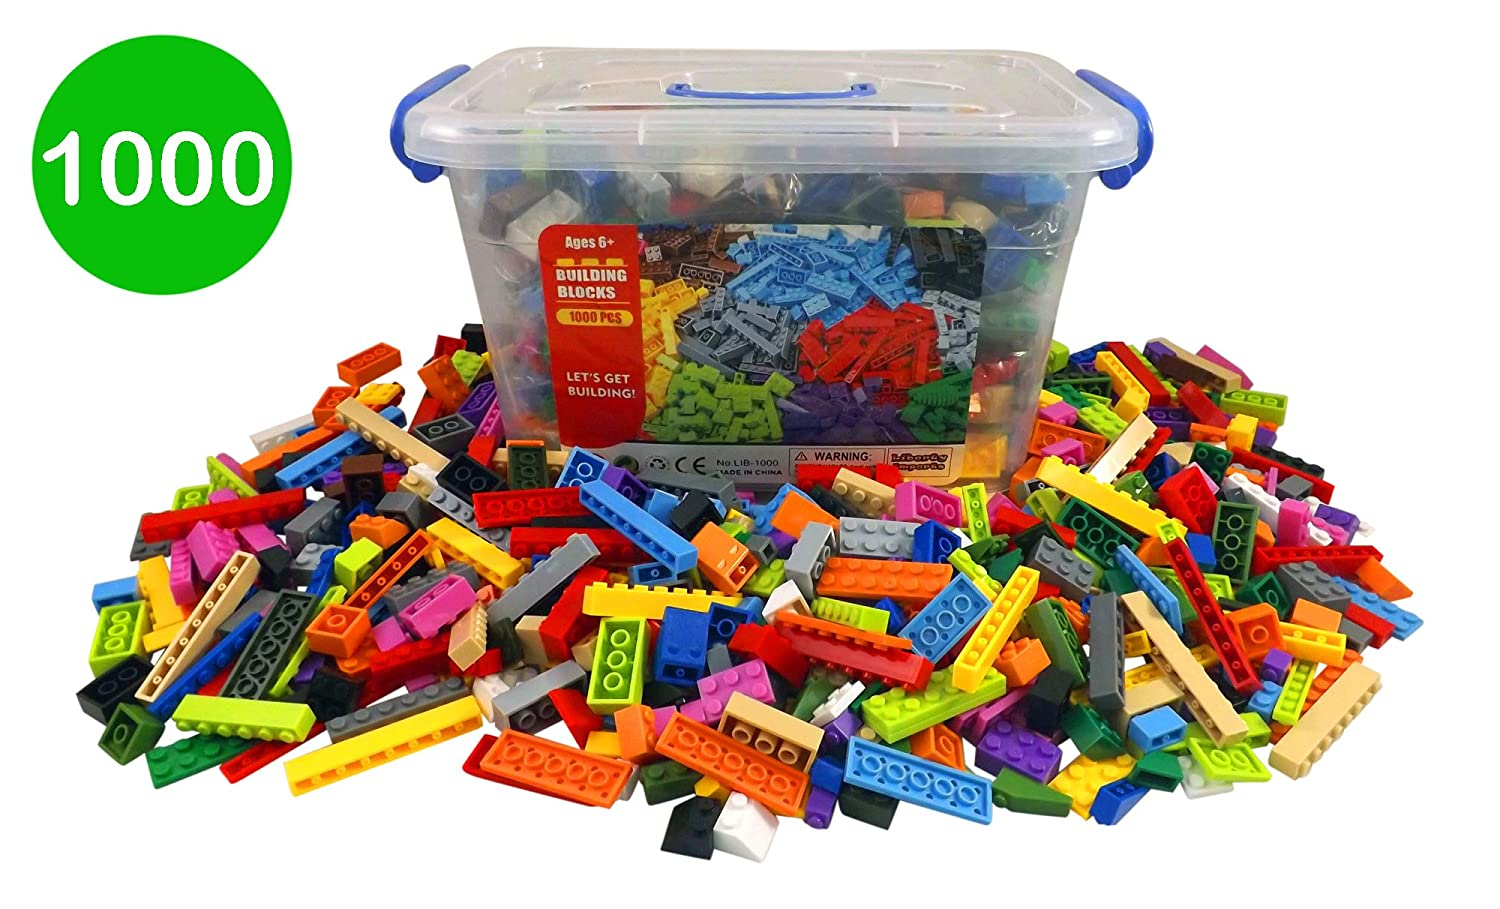 Bucket of Building Bricks - 1000 PC Bulk Blocks with Roof Pieces - Tight Fit and Compatible with All Major Brands Review